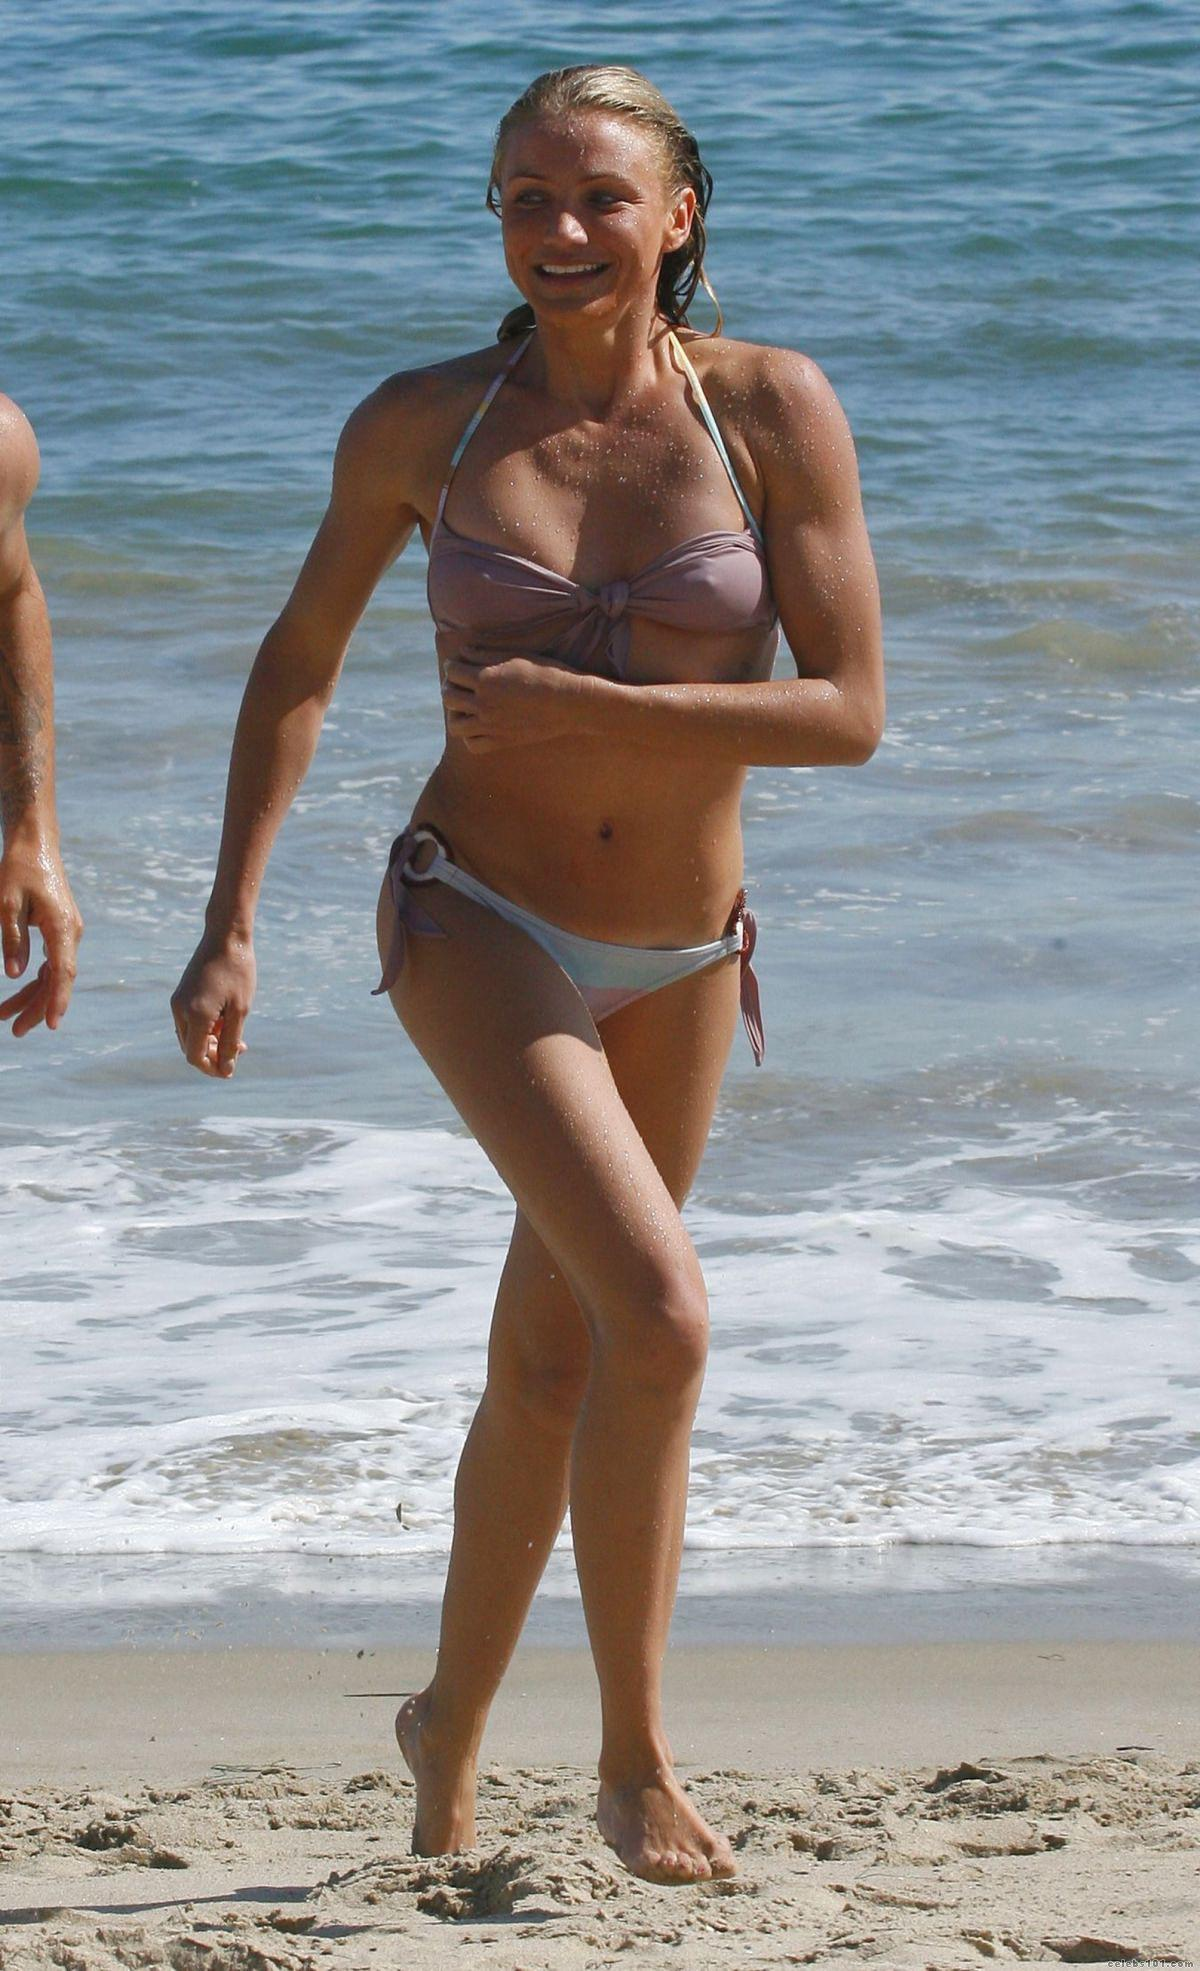 Pity, Cameron diaz see through bikini final, sorry